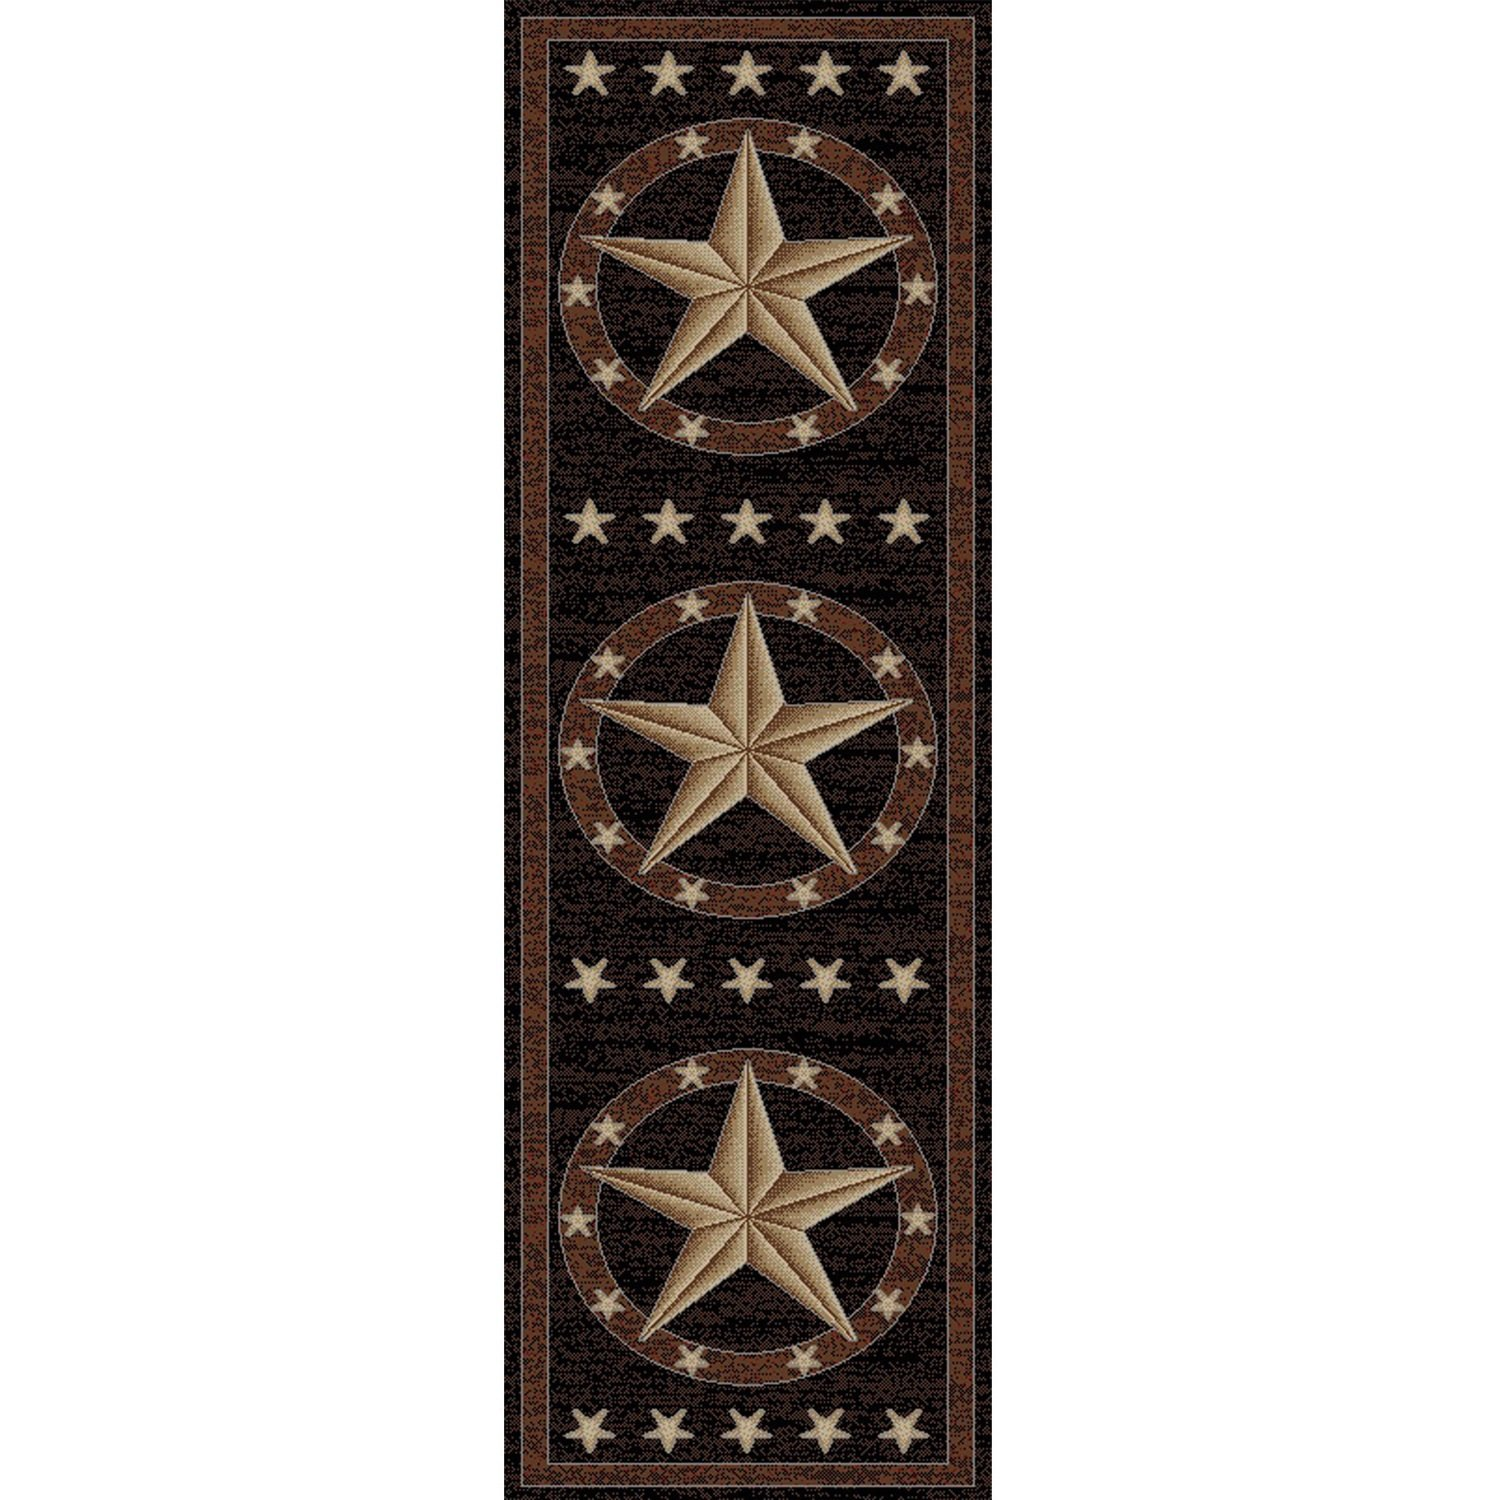 Rustic Western Texas Star Pattern Area Rug, Featuring Geometric Revolving Stars Themed, Runner Indoor Hallway Doorway Living Area Bedroom Cabin Carpet, Modern West Country Style, Tan, Size 2'3 x 7'7